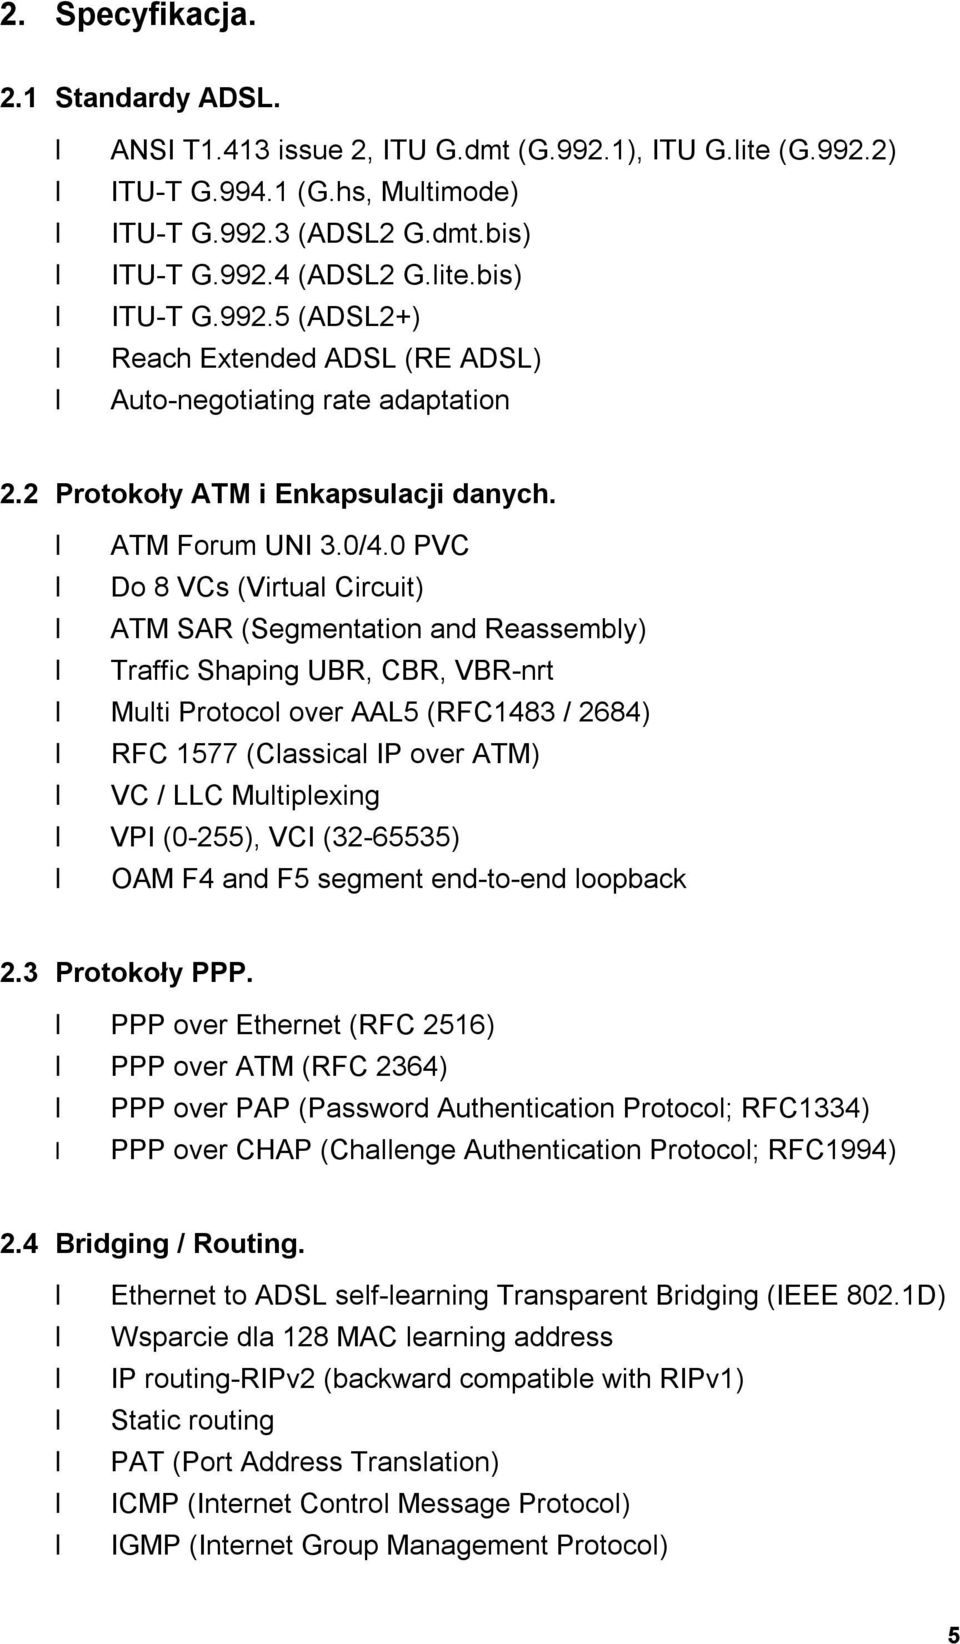 0 PVC Do 8 VCs (Virtual Circuit) ATM SAR (Segmentation and Reassembly) Traffic Shaping UBR, CBR, VBR-nrt Multi Protocol over AAL5 (RFC1483 / 2684) RFC 1577 (Classical IP over ATM) VC / LLC